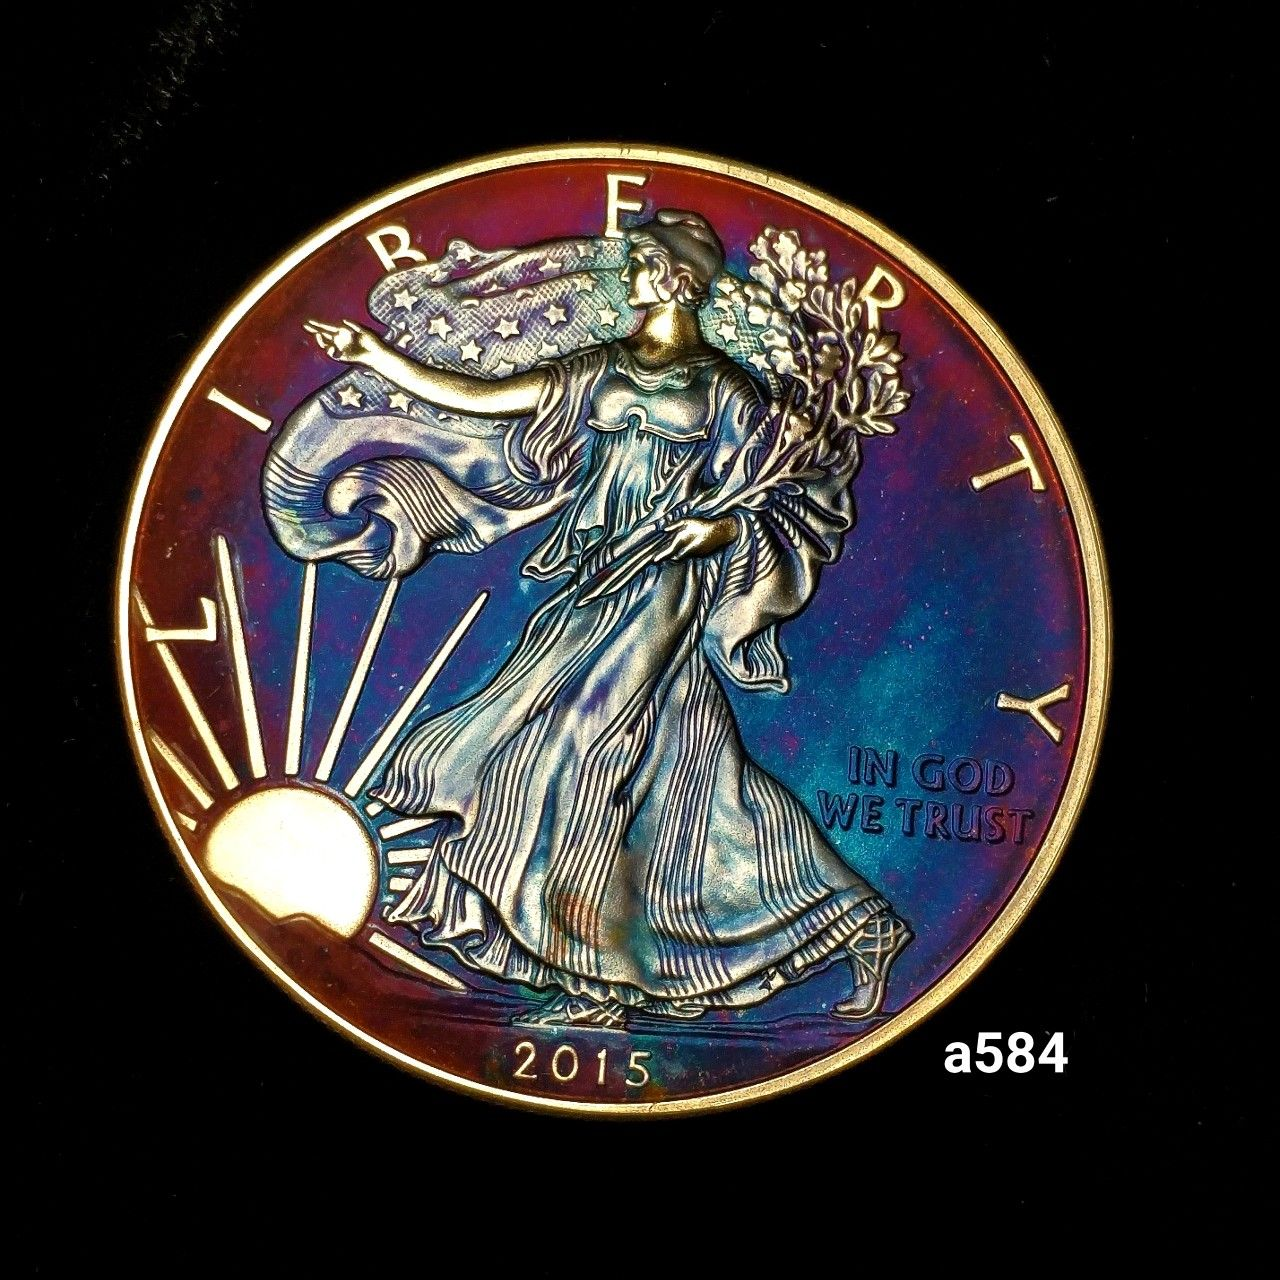 Rainbow Toned Silver American Eagle Coin 1 Troy Ounce Fine Silver Uncirculated High Grade Artistic In 2020 Eagle Coin Silver Eagle Coins Fine Silver